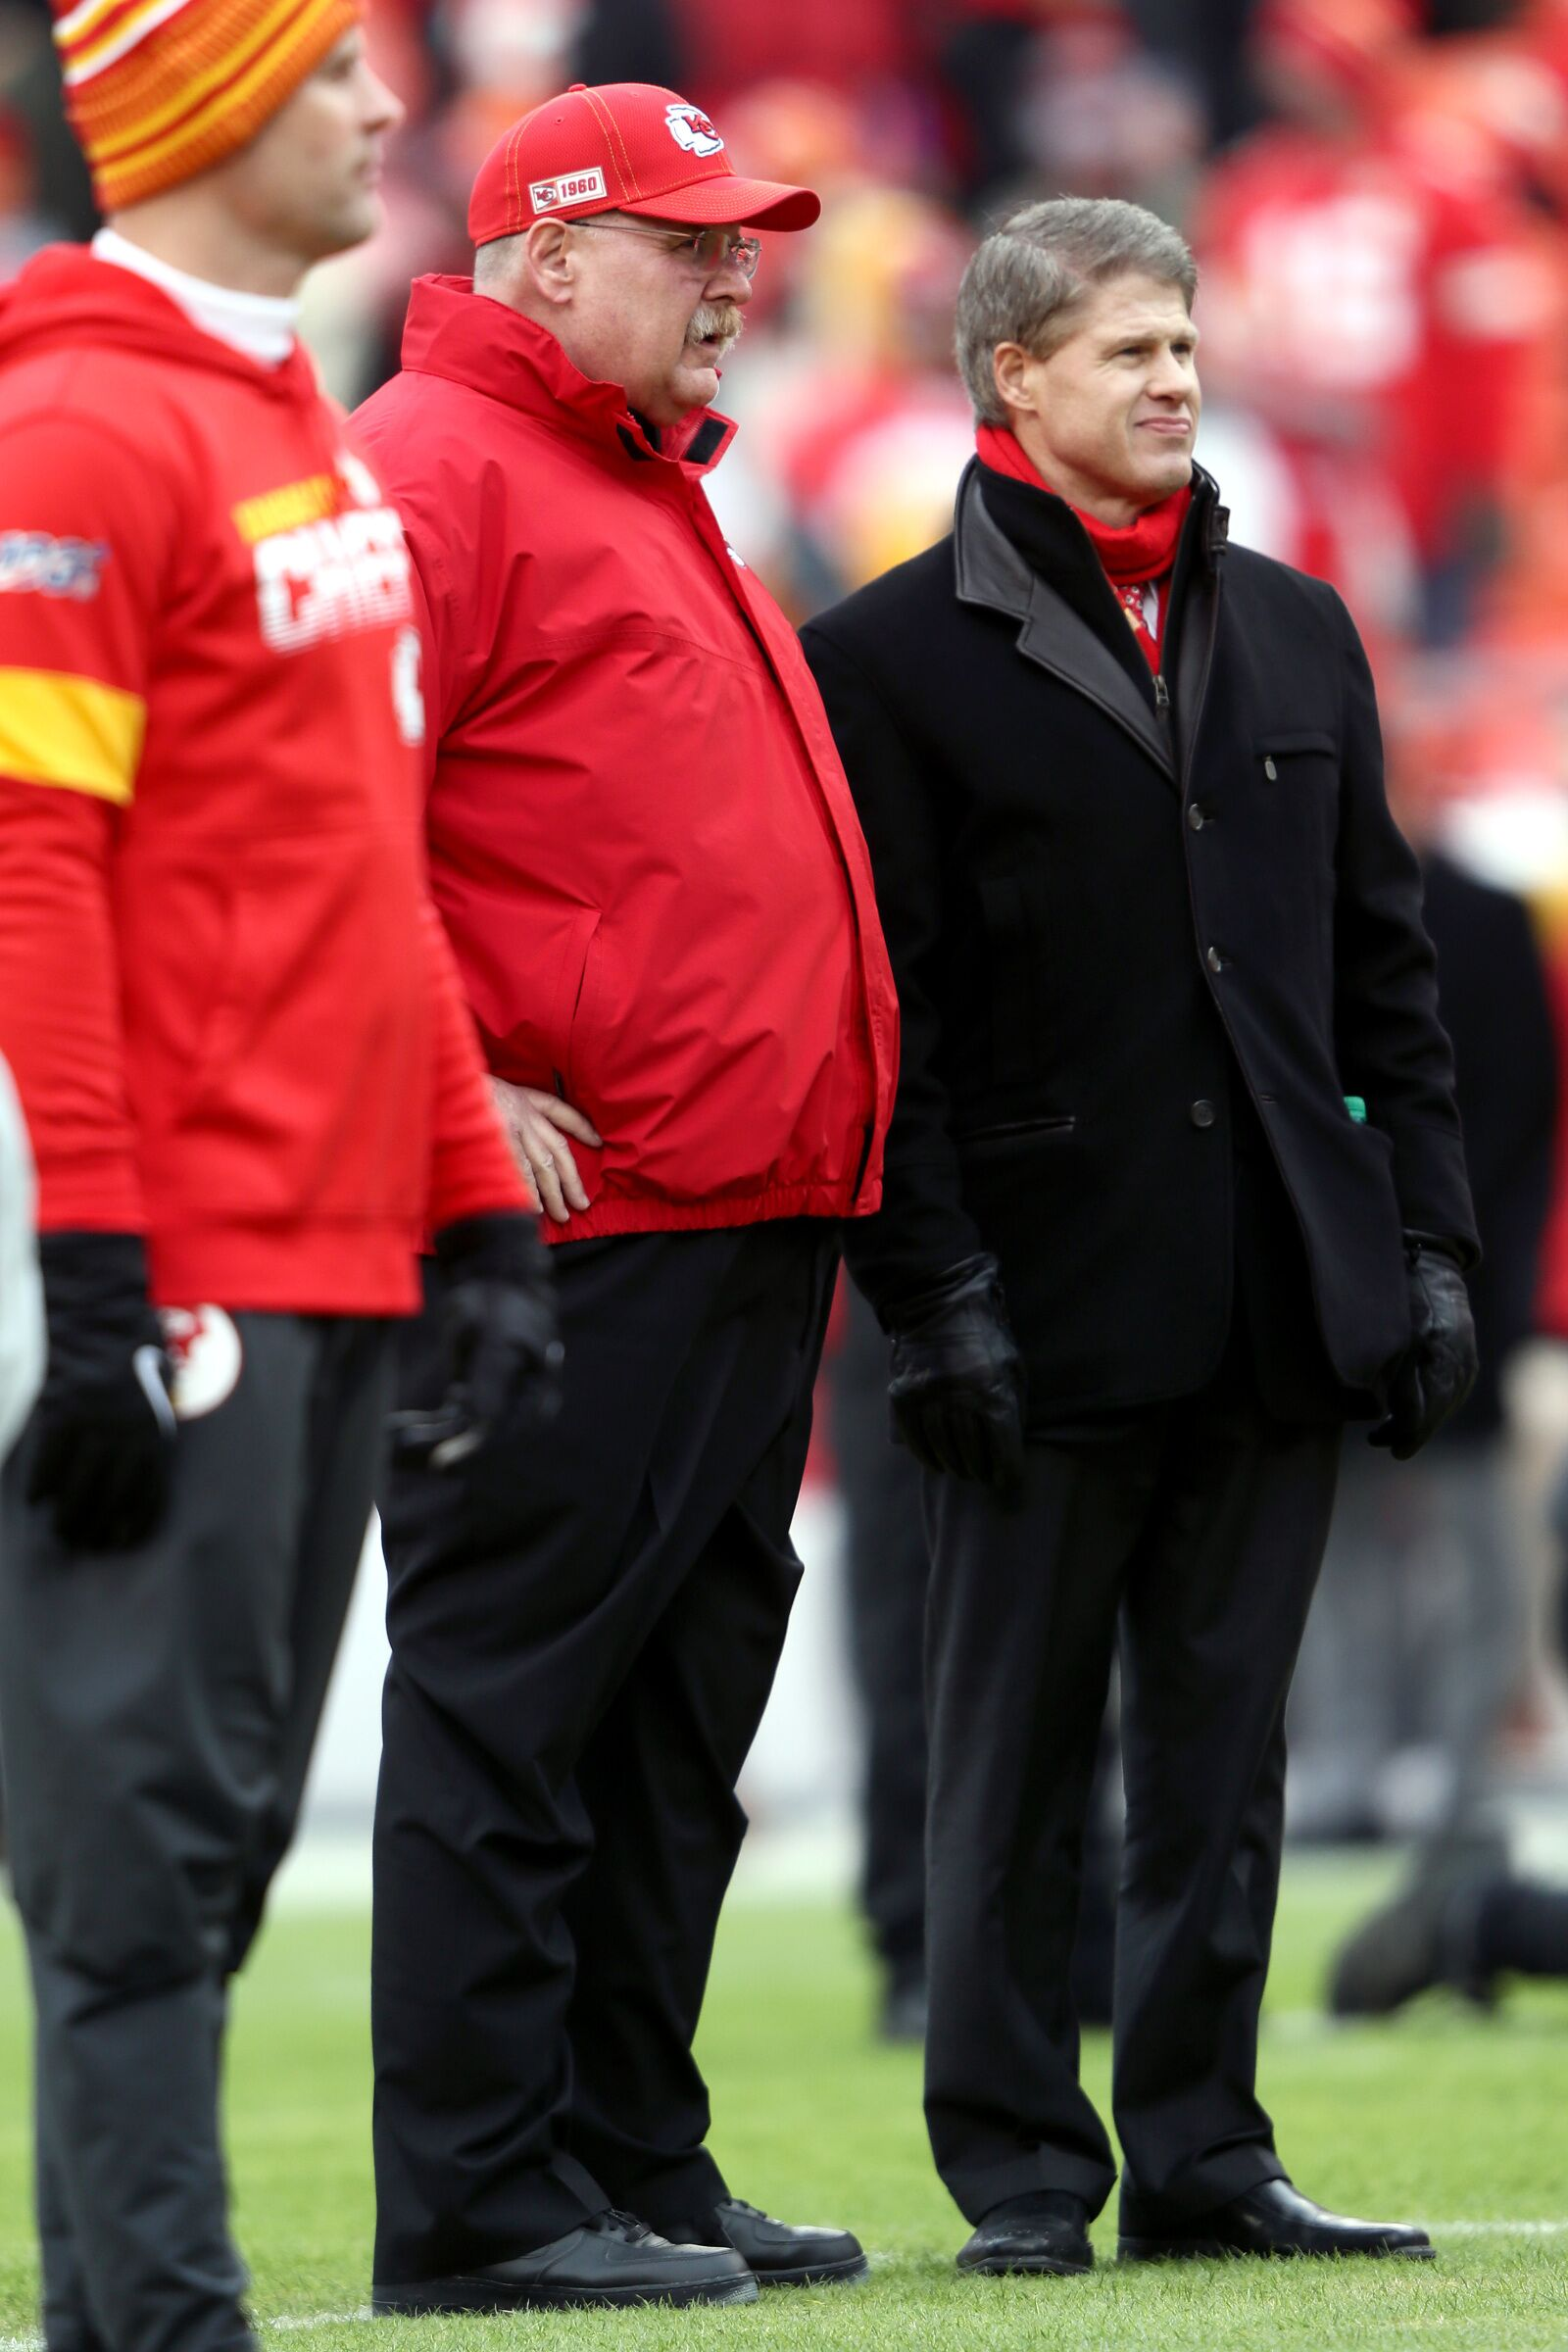 Clark Hunt is forging his own impressive legacy as an NFL owner